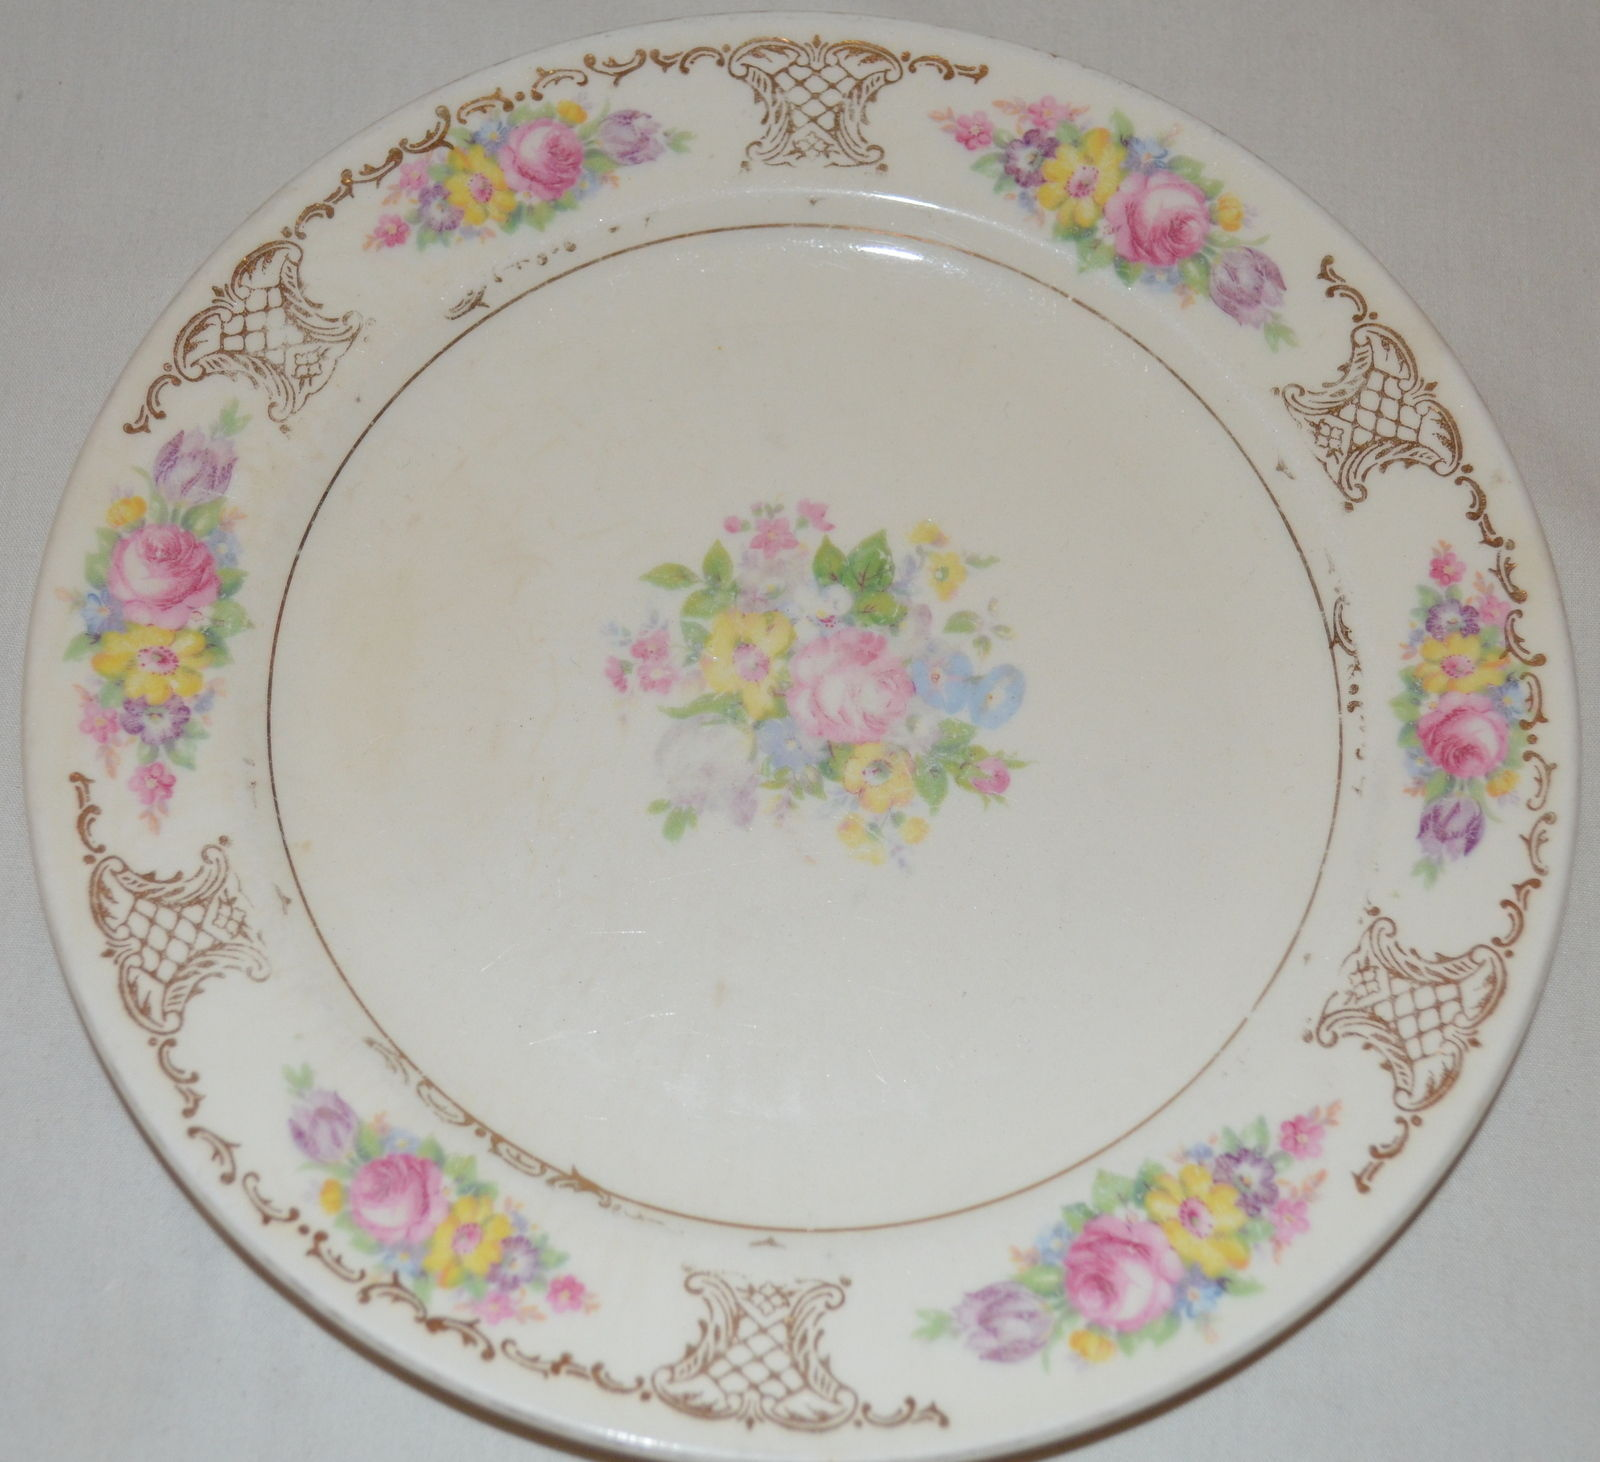 S l1600 & Semi Vitreous Edwin M Knowles Floral Saucer and 50 similar items